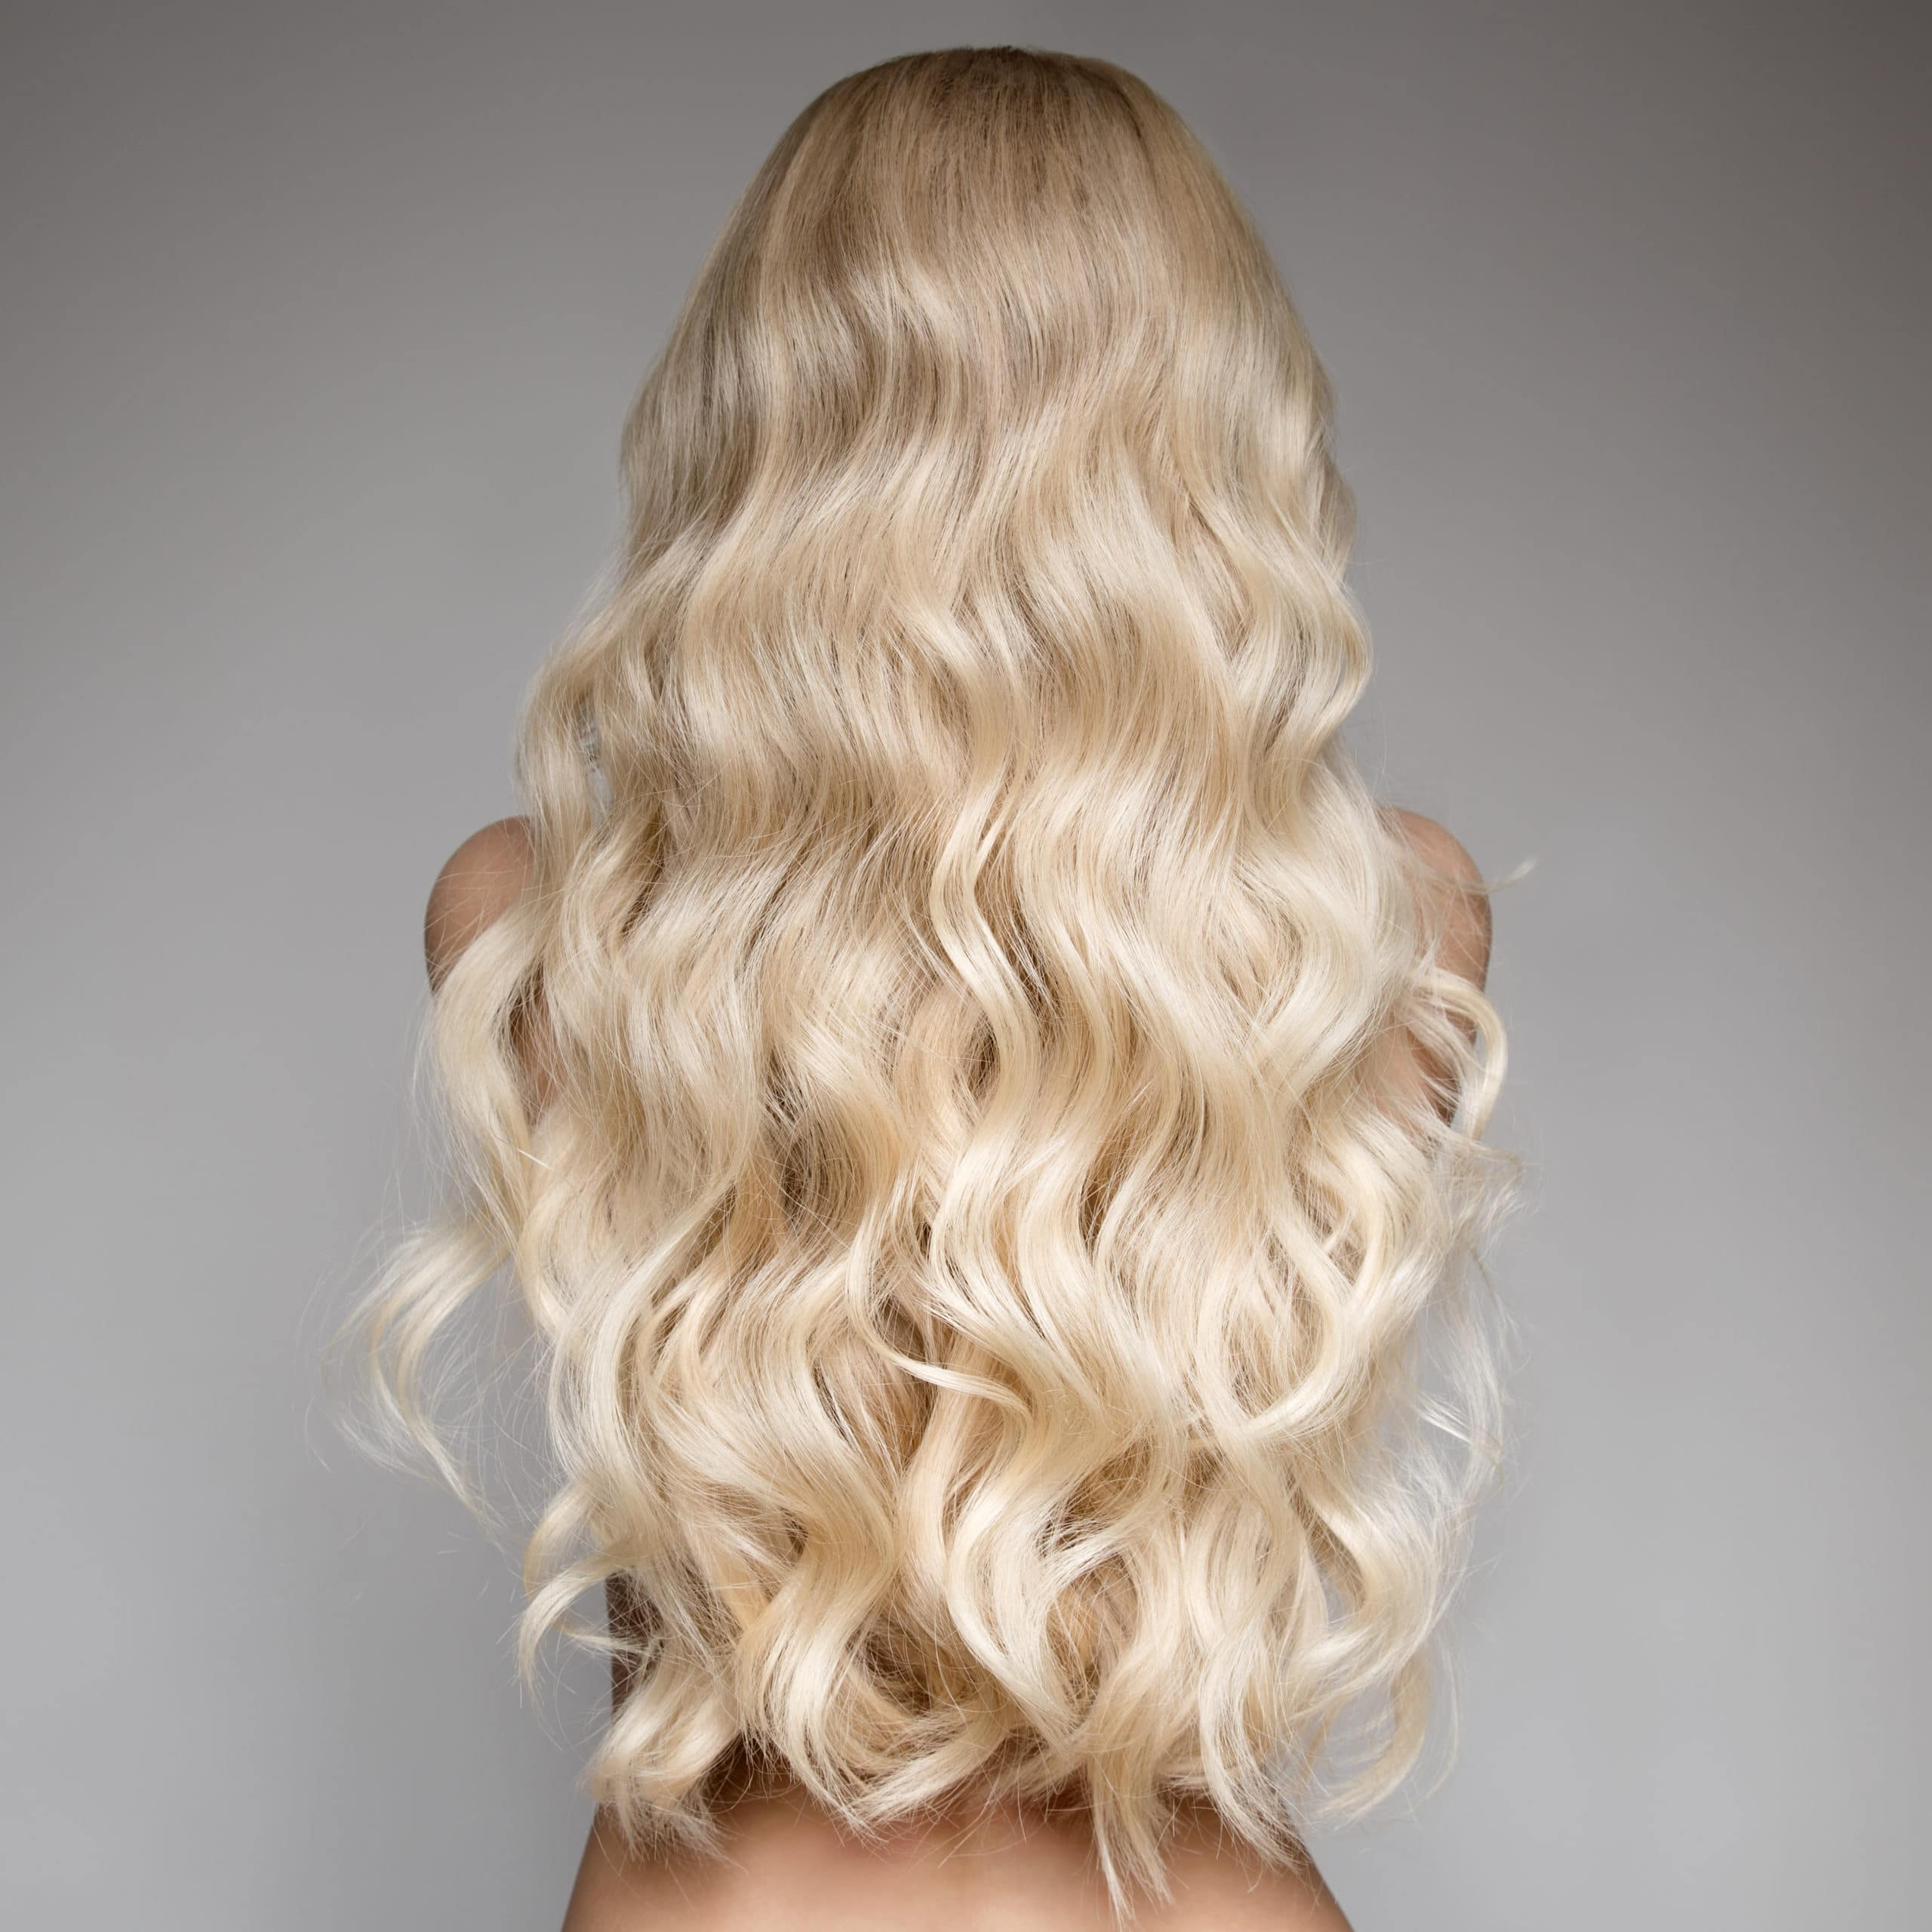 GORGEOUS PLATINUM HAIR THAT IS HEALTHY AND LONG